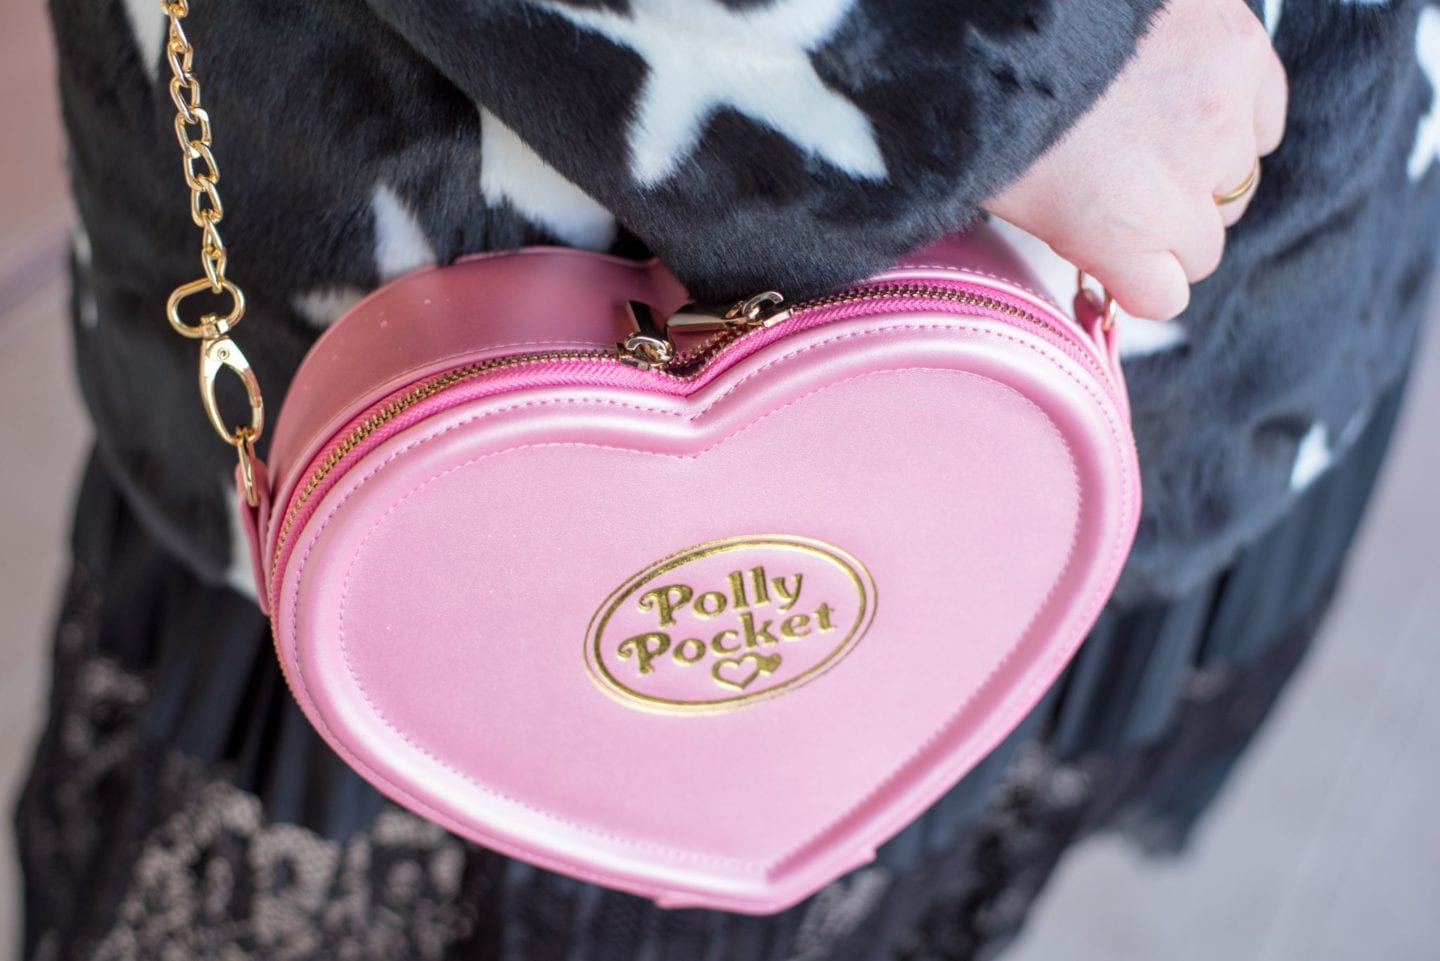 polly pocket handbag pink